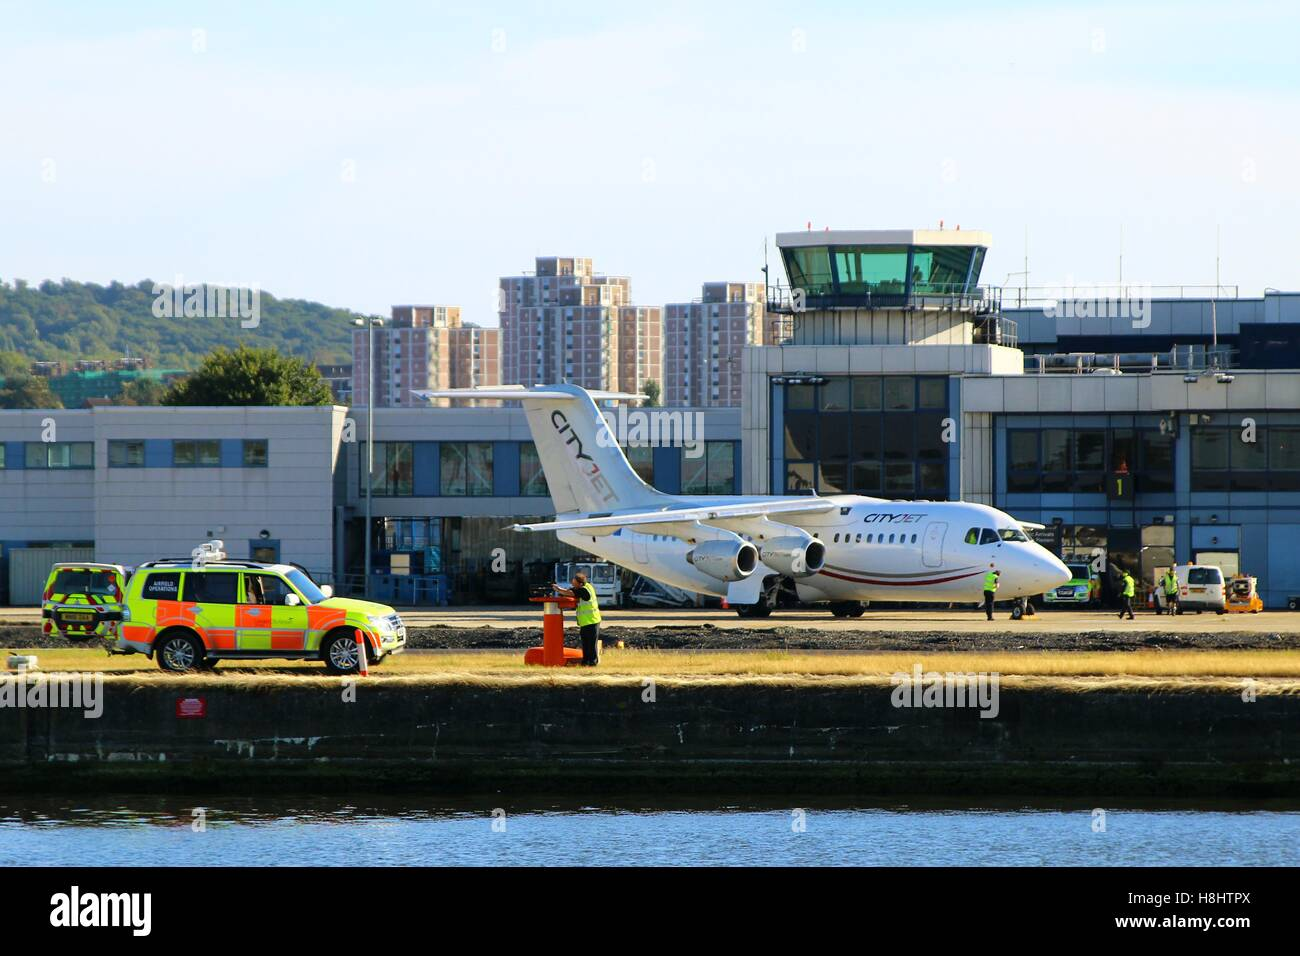 LONDON, UK - SEPTEMBER 11, 2016: An Avro RJ85 by CityJet on the airfield at LCY - Stock Image